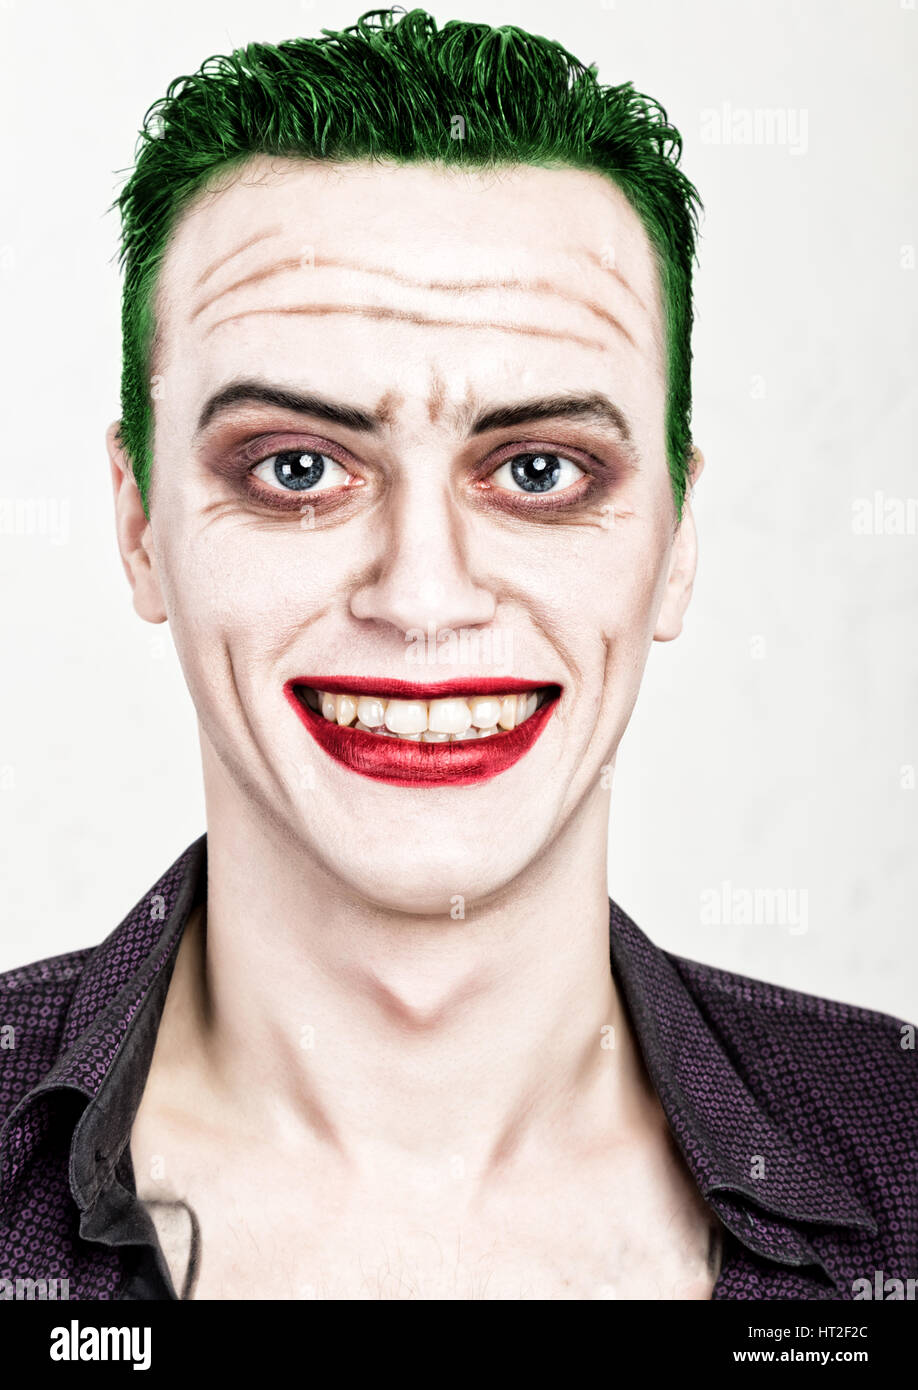 Nieuw guy with crazy joker face, green hair and idiotic smike. carnaval WZ-31